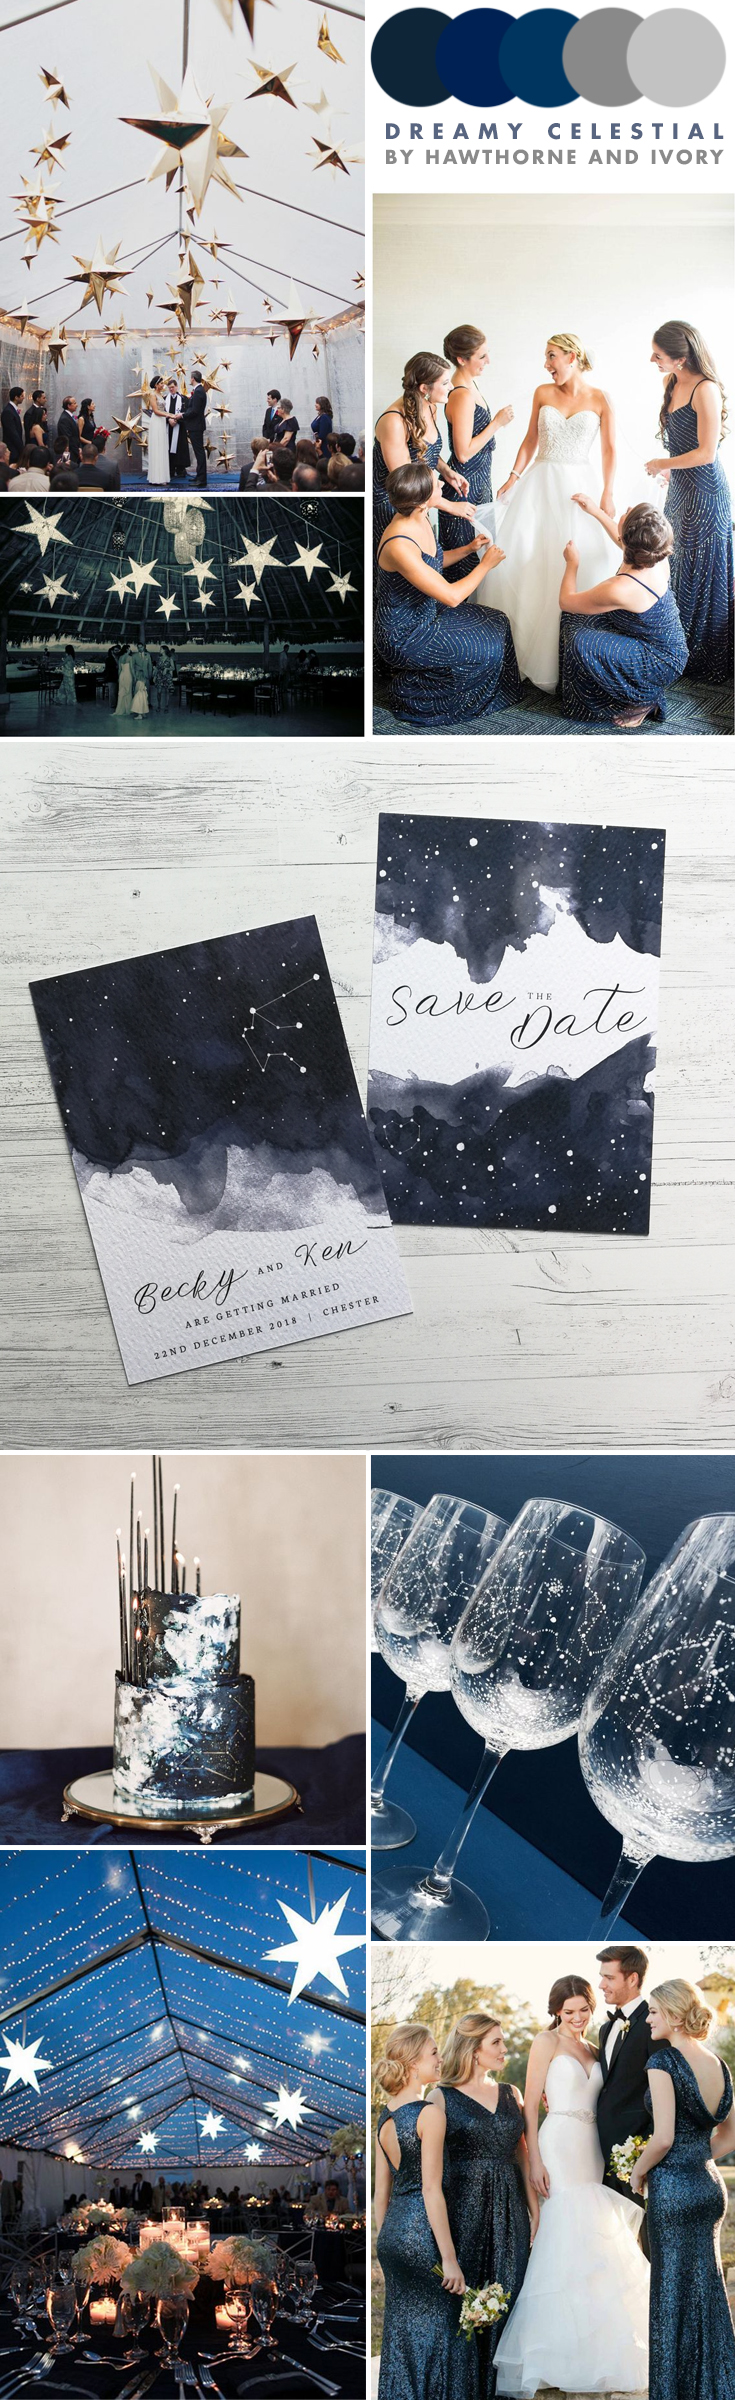 starry night celestial wedding moodboard hawthorne and ivory